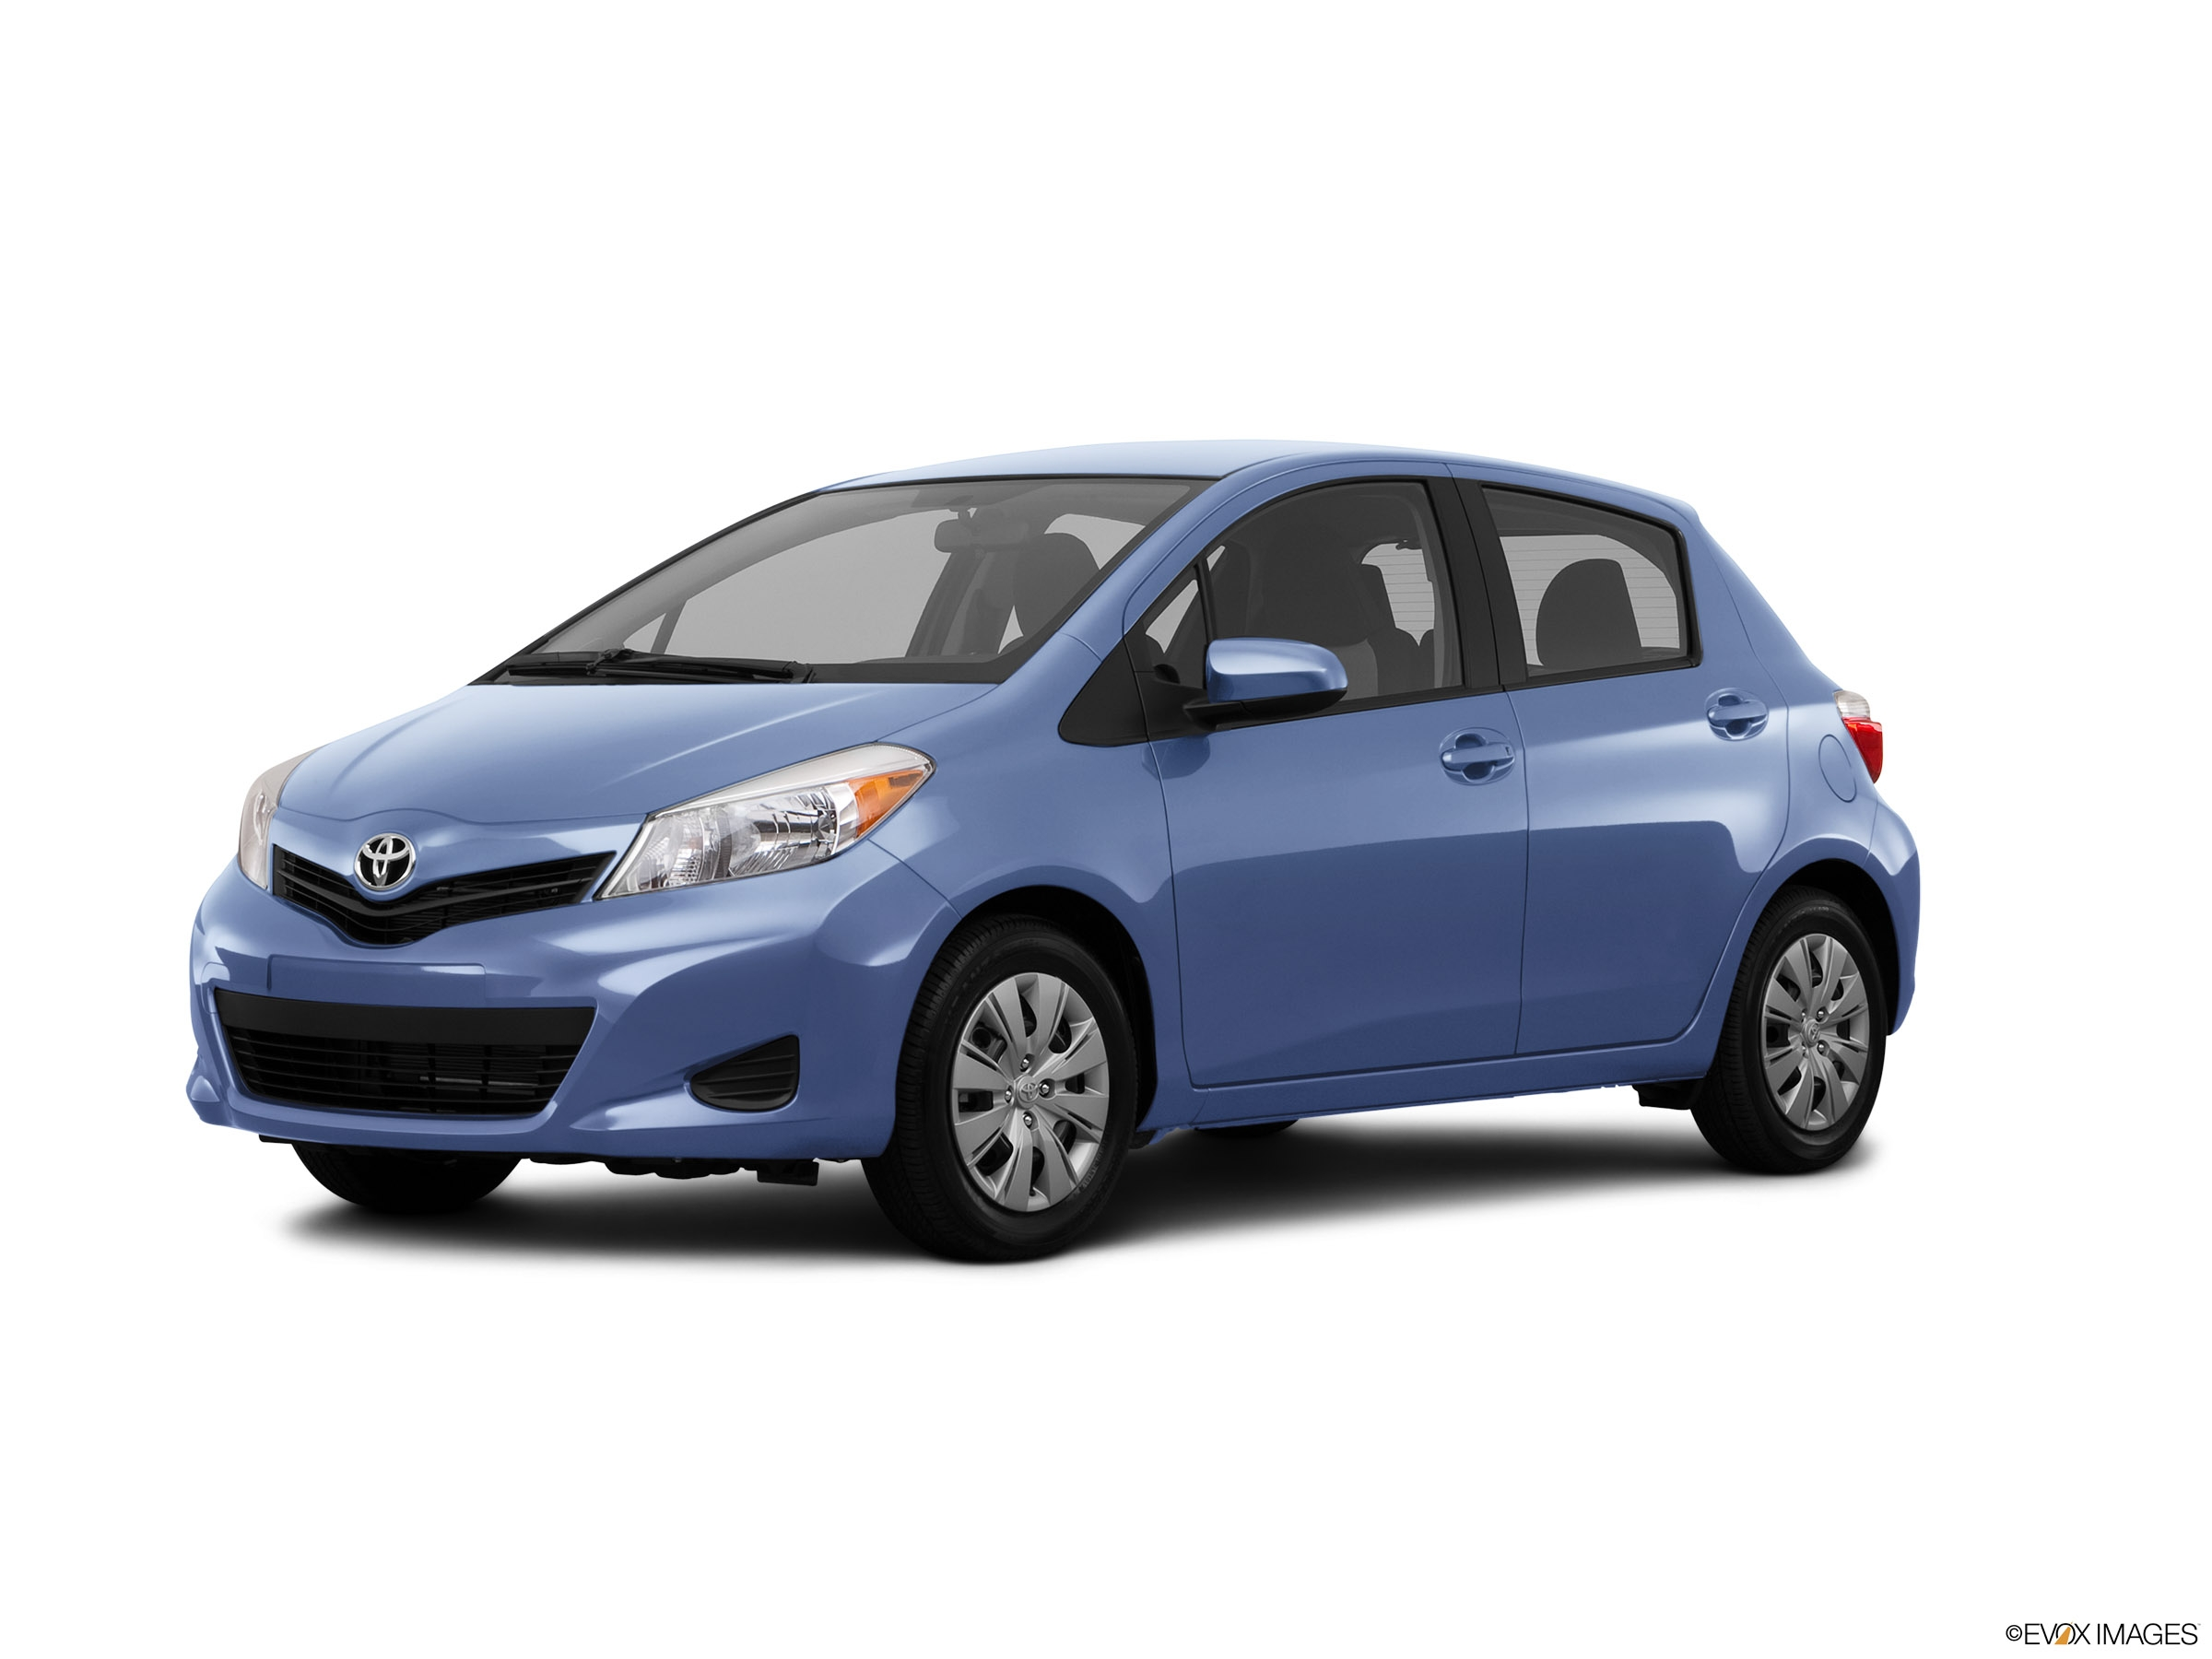 compare cost to own 2013 honda fit honda fit dealer invoice